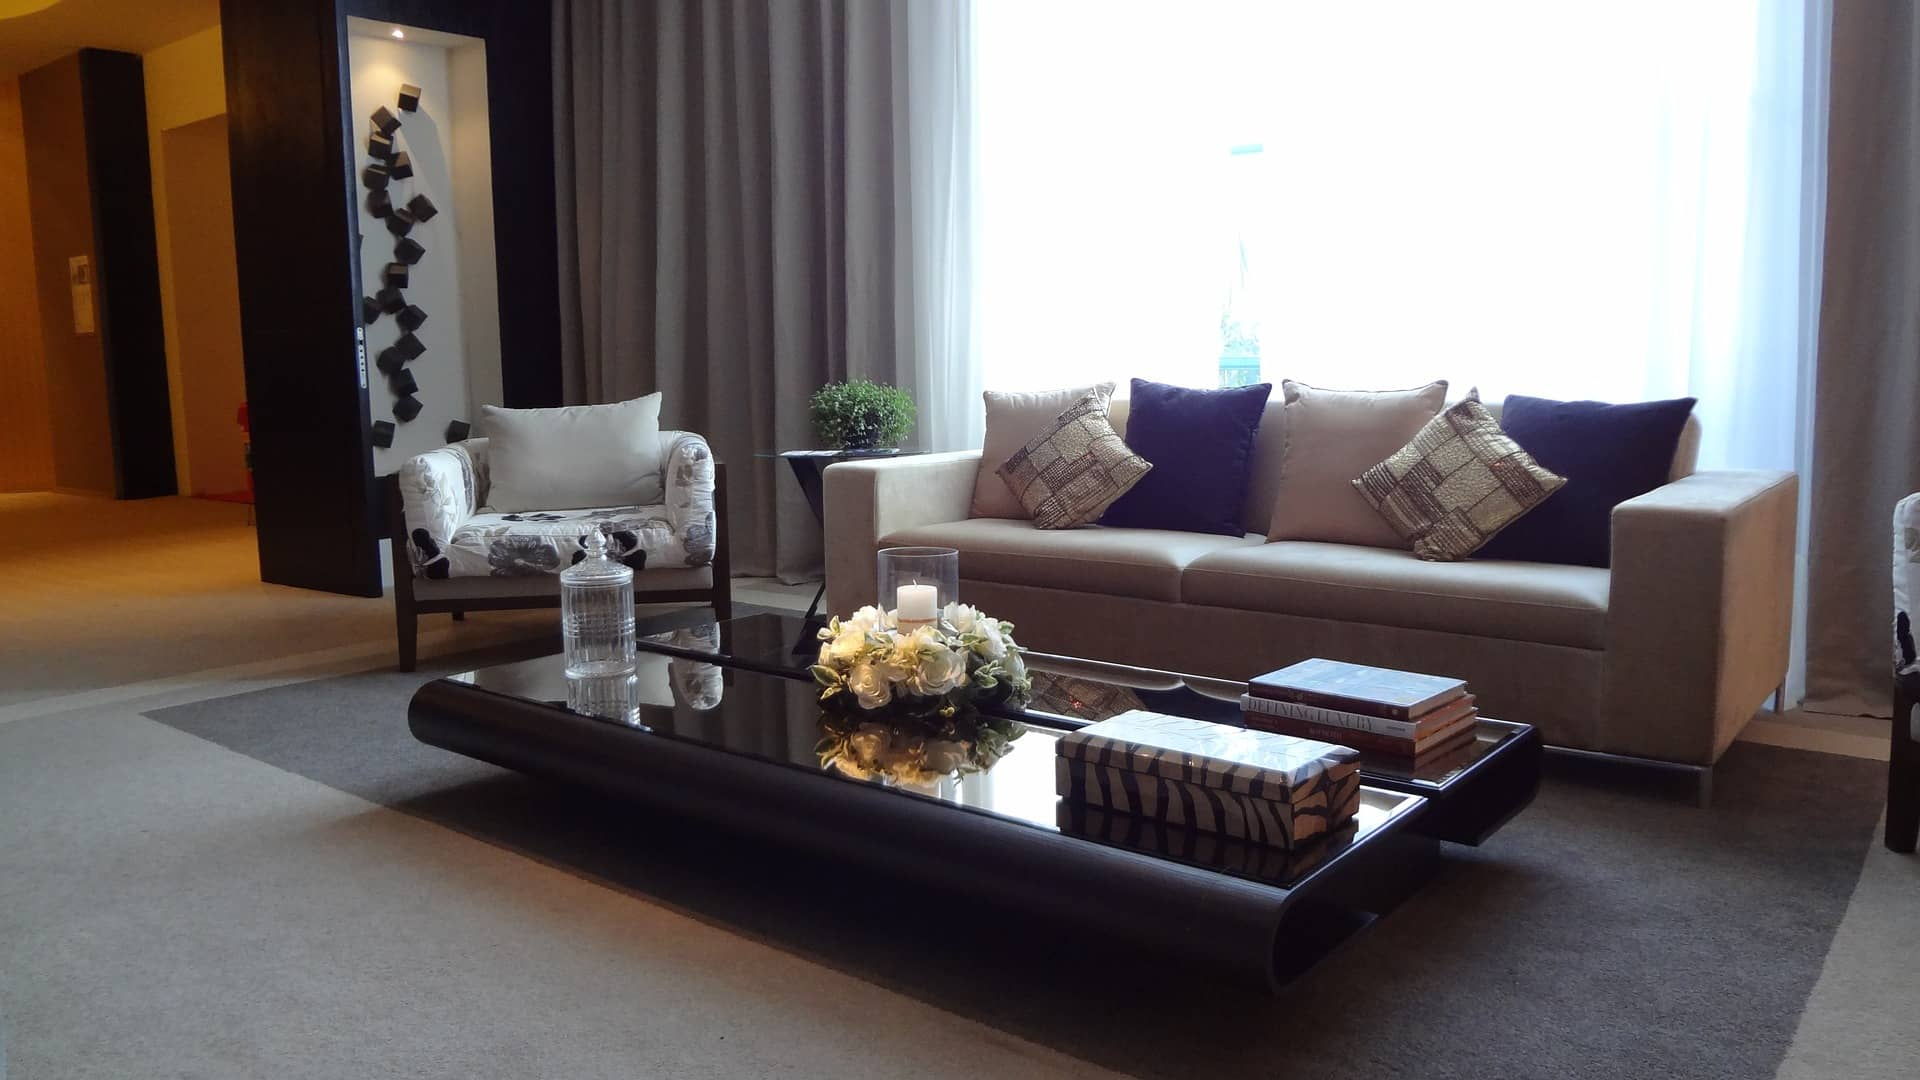 Beige upholstered 2 seater sofa along with contemporary designed two coffee tables painted black with glass top.